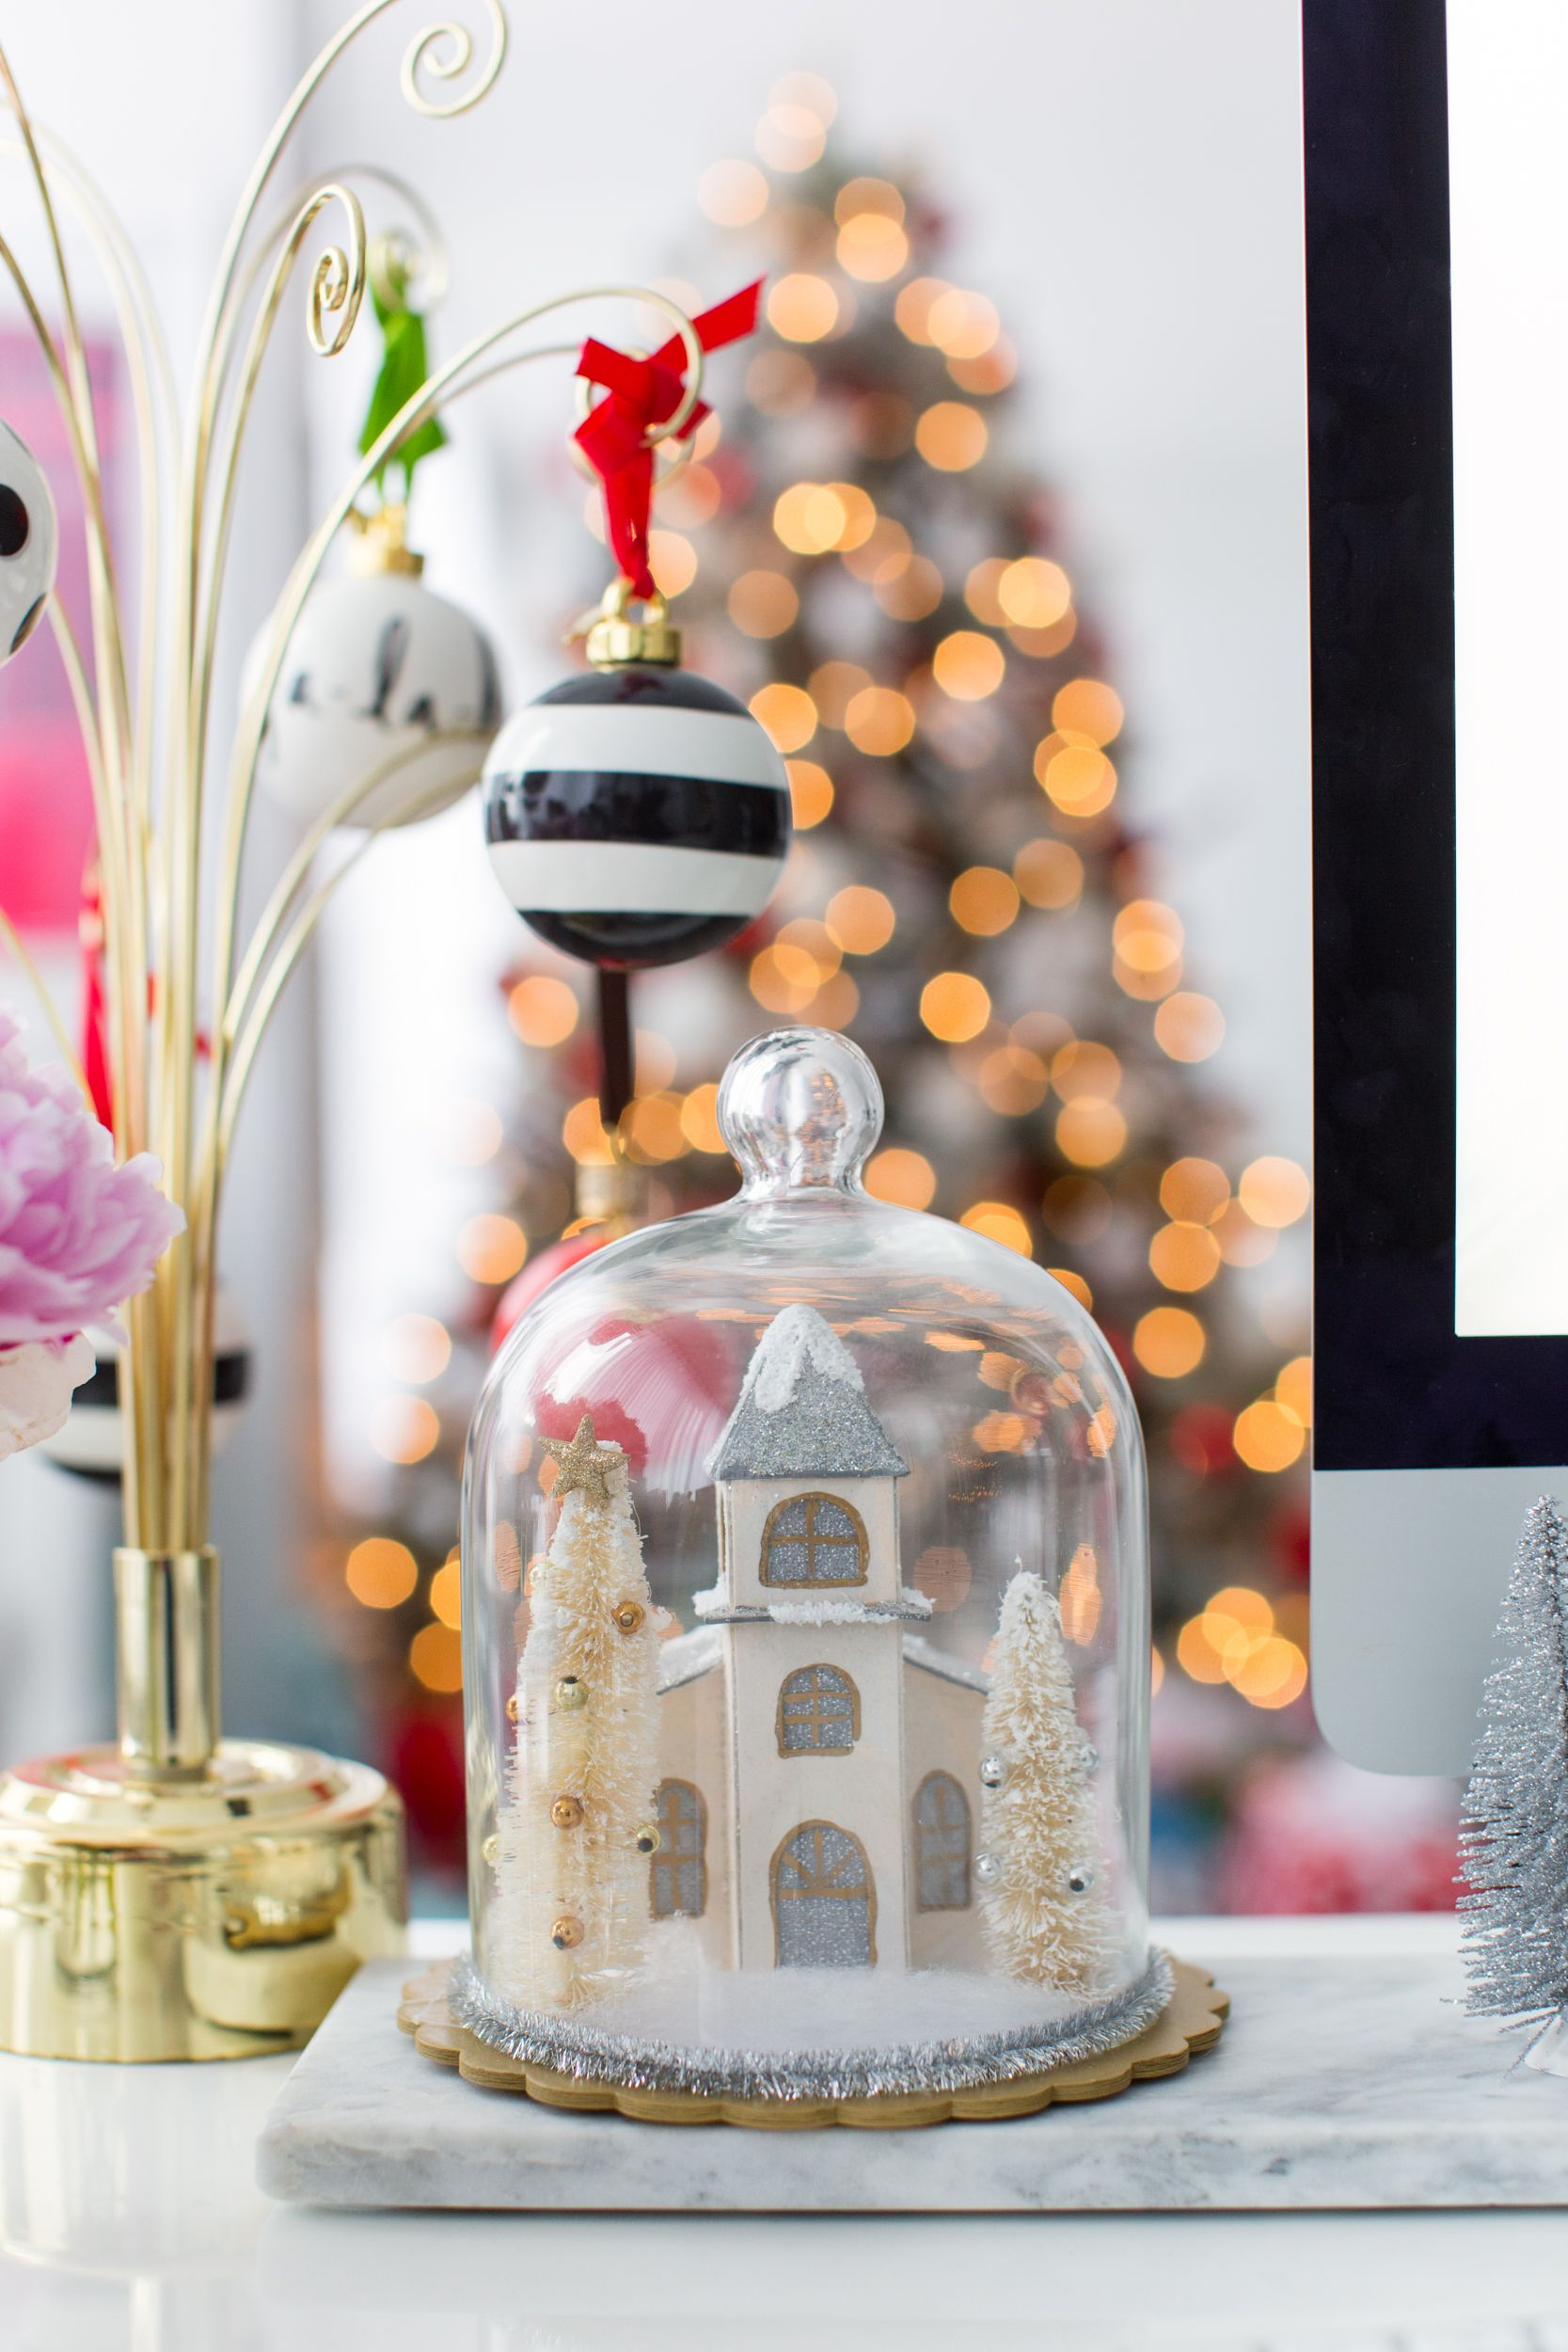 BEST PLACES TO SHOP FOR HOLIDAY DECOR Home Sense